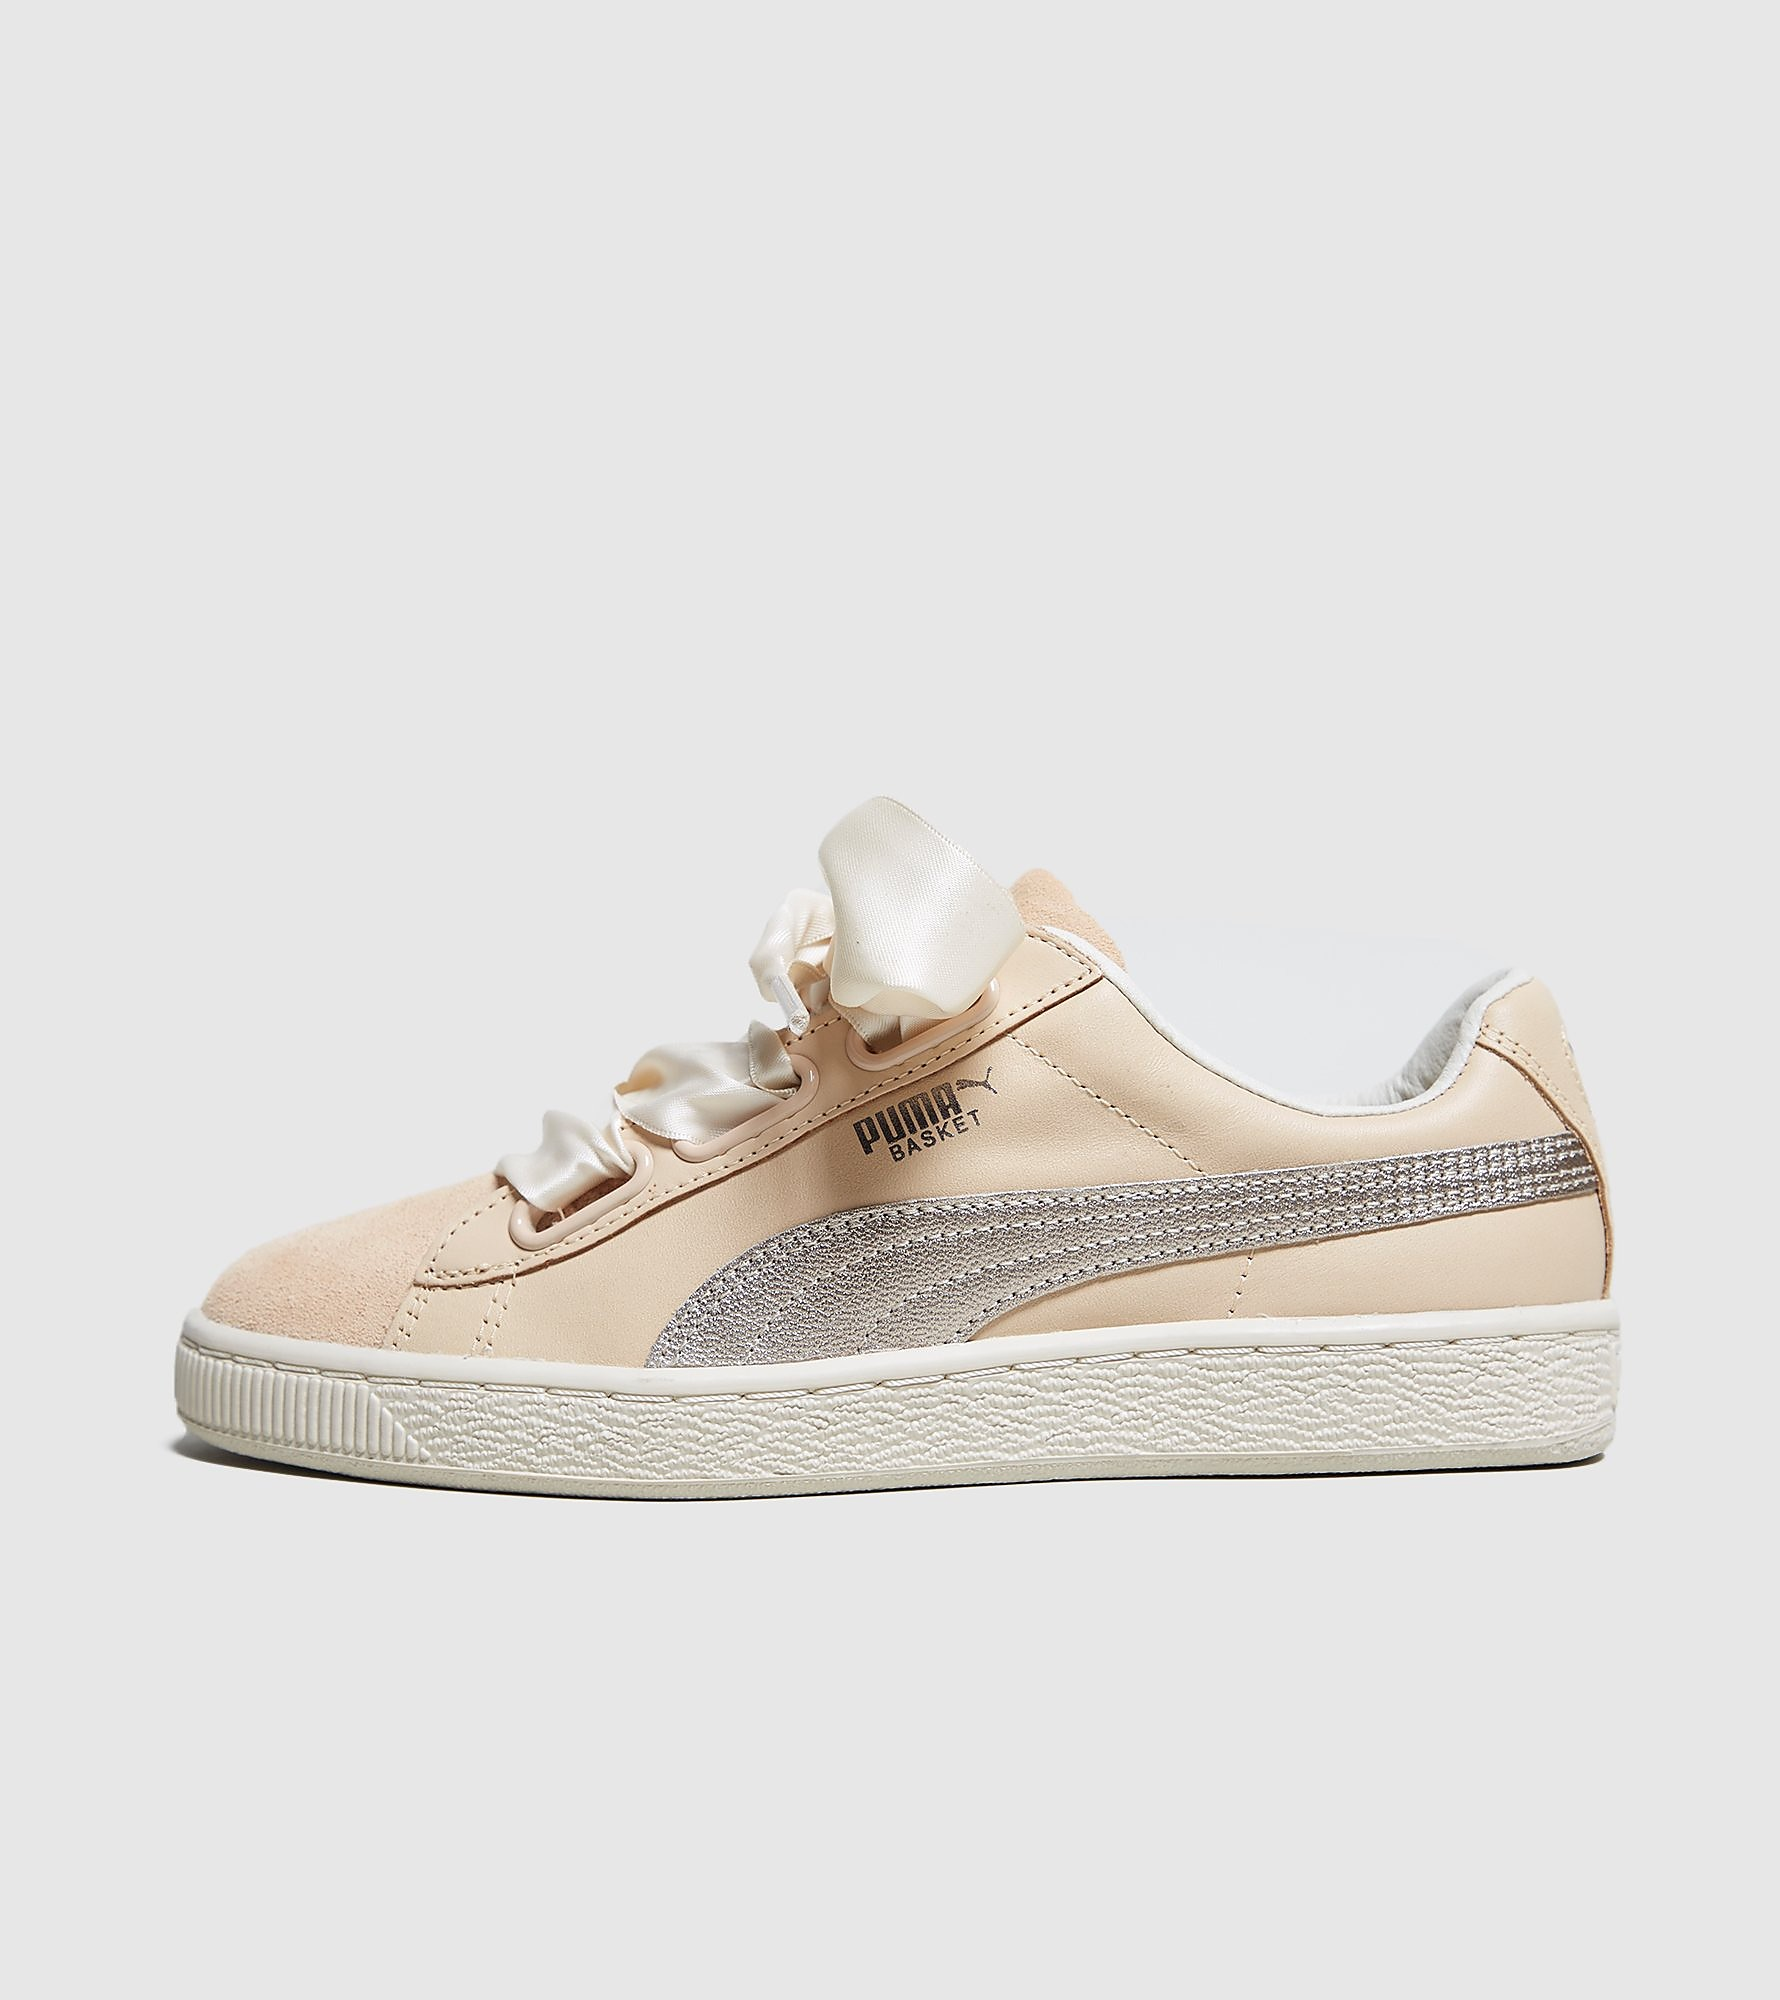 PUMA Basket Heart Premium Women's